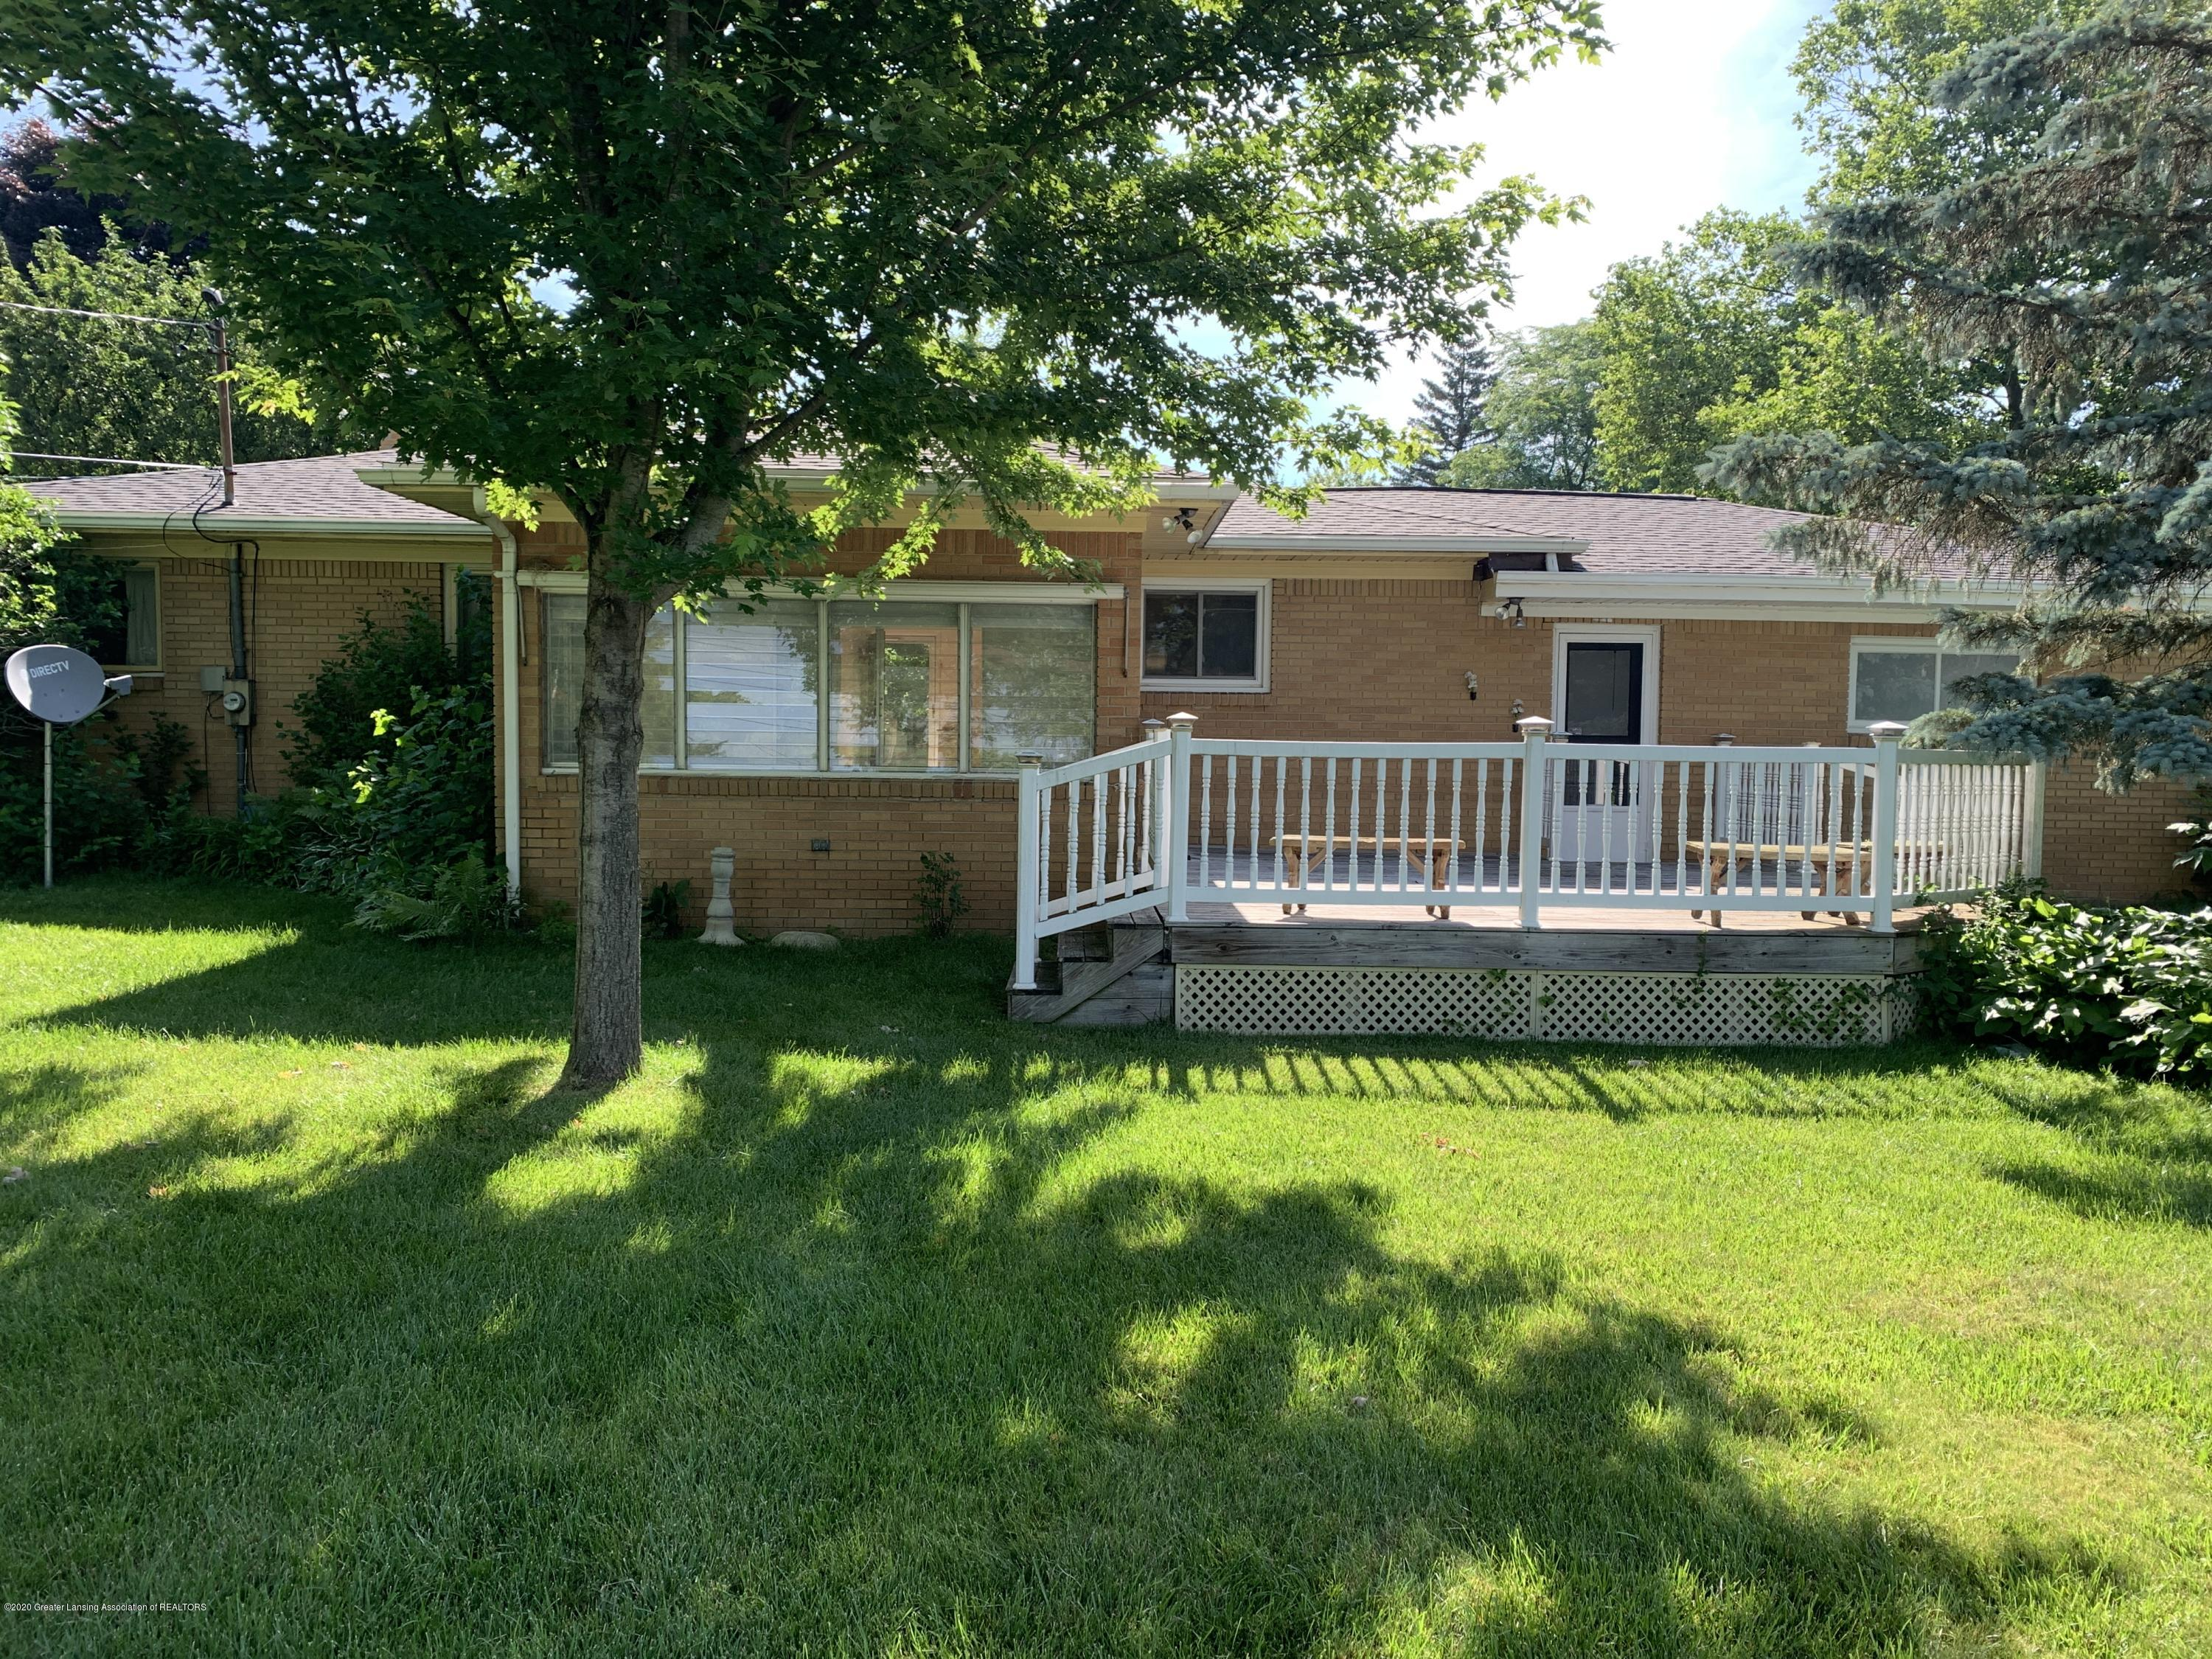 516 Woodhaven Dr - DFB38A8A-6F3F-4962-BCB2-05EE60017EEE - 22